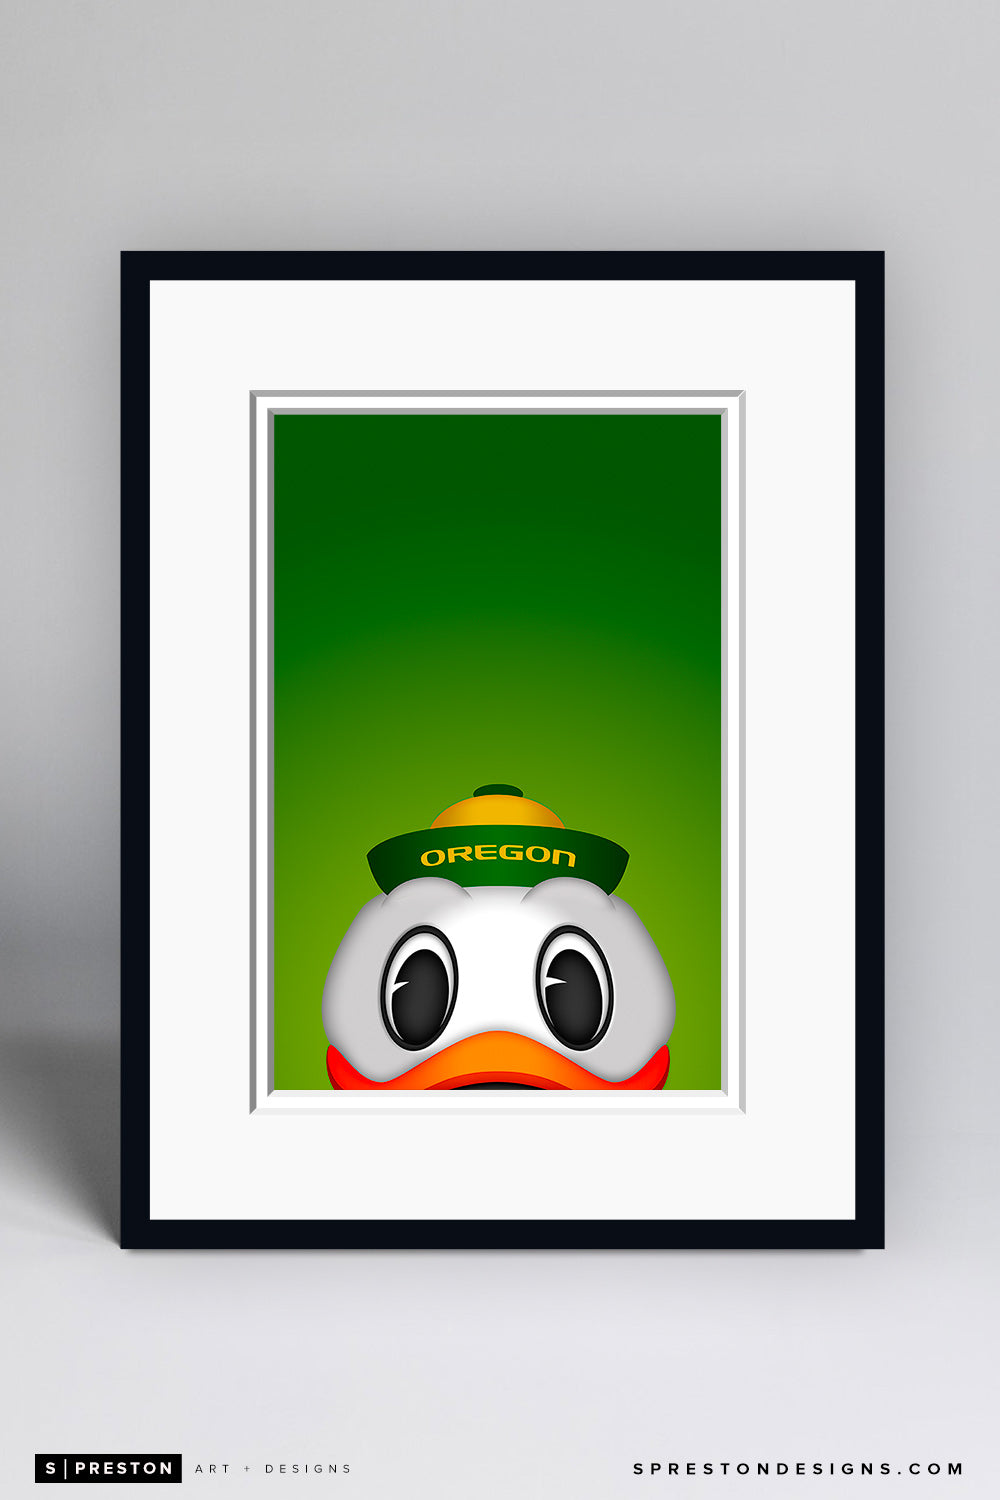 Minimalist Oregon Duck - Oregon Ducks Art Print - University of Oregon - S. Preston Art + Designs